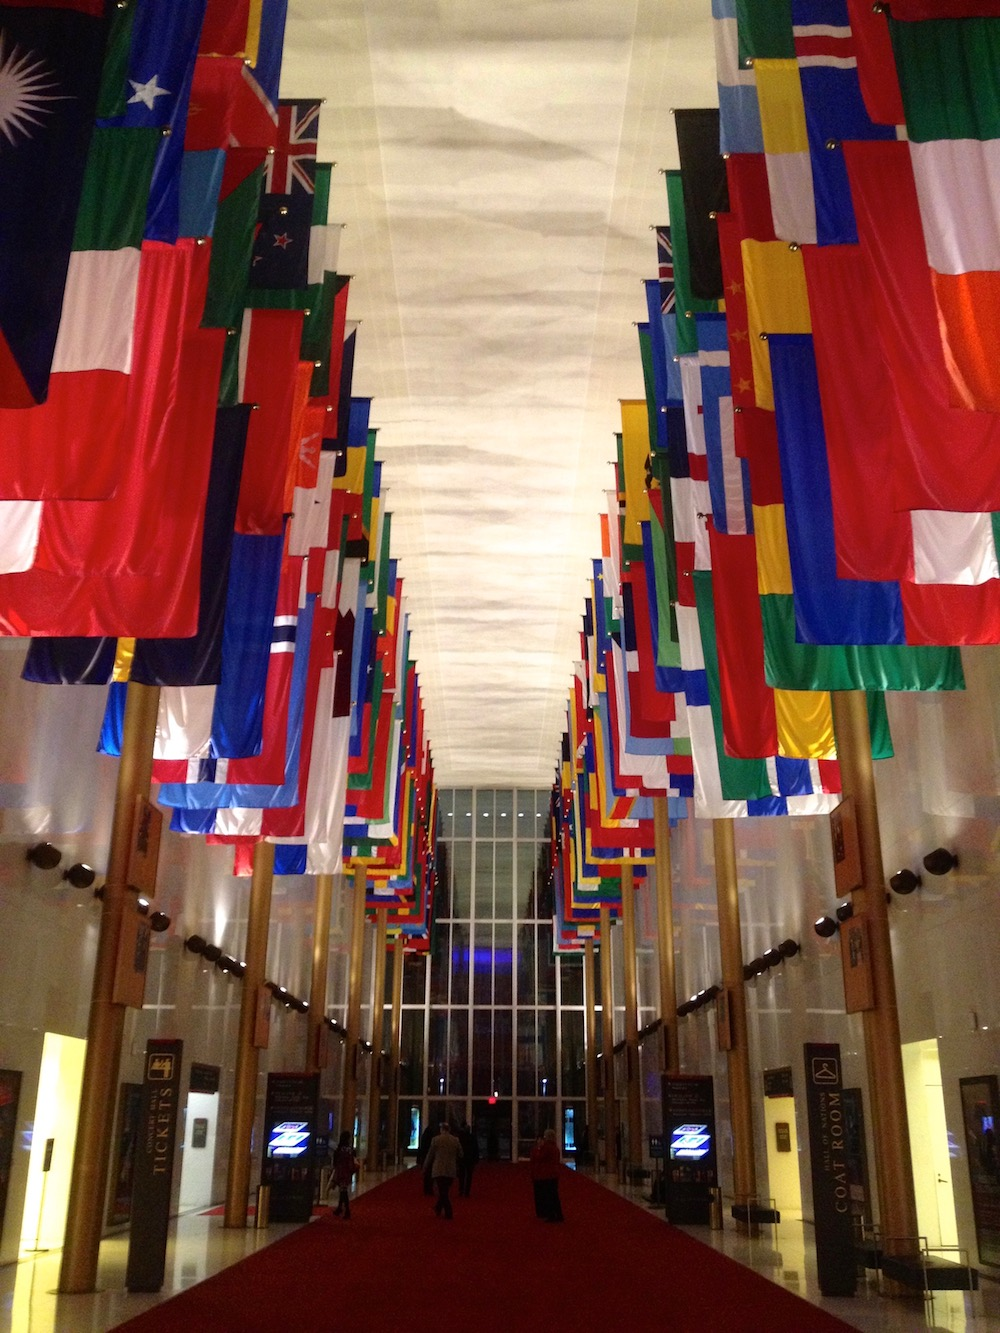 E Pluribus Unum . Out of many, one. The flags of the many places we've come from -- the world's vibrant nations -- hang majestically at the Kennedy Center in Washington, DC.